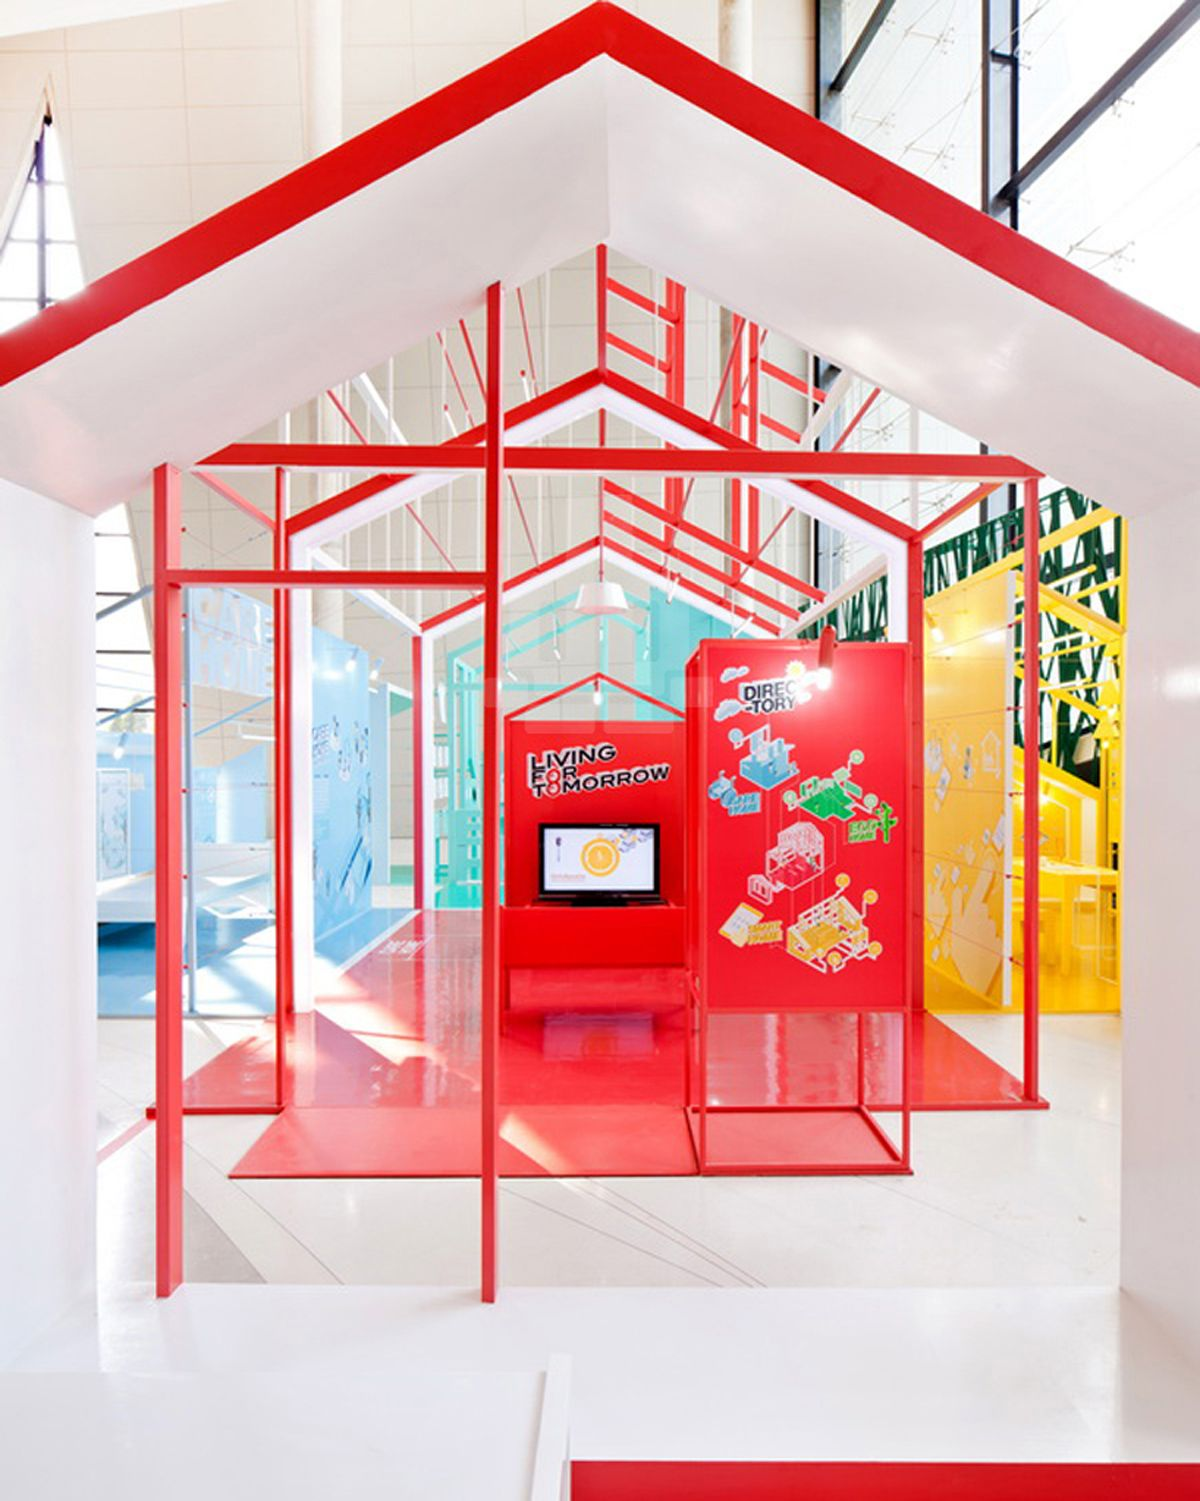 D Exhibition Bangkok : Apostrophy s colorizes living for tomorrow exhibit in